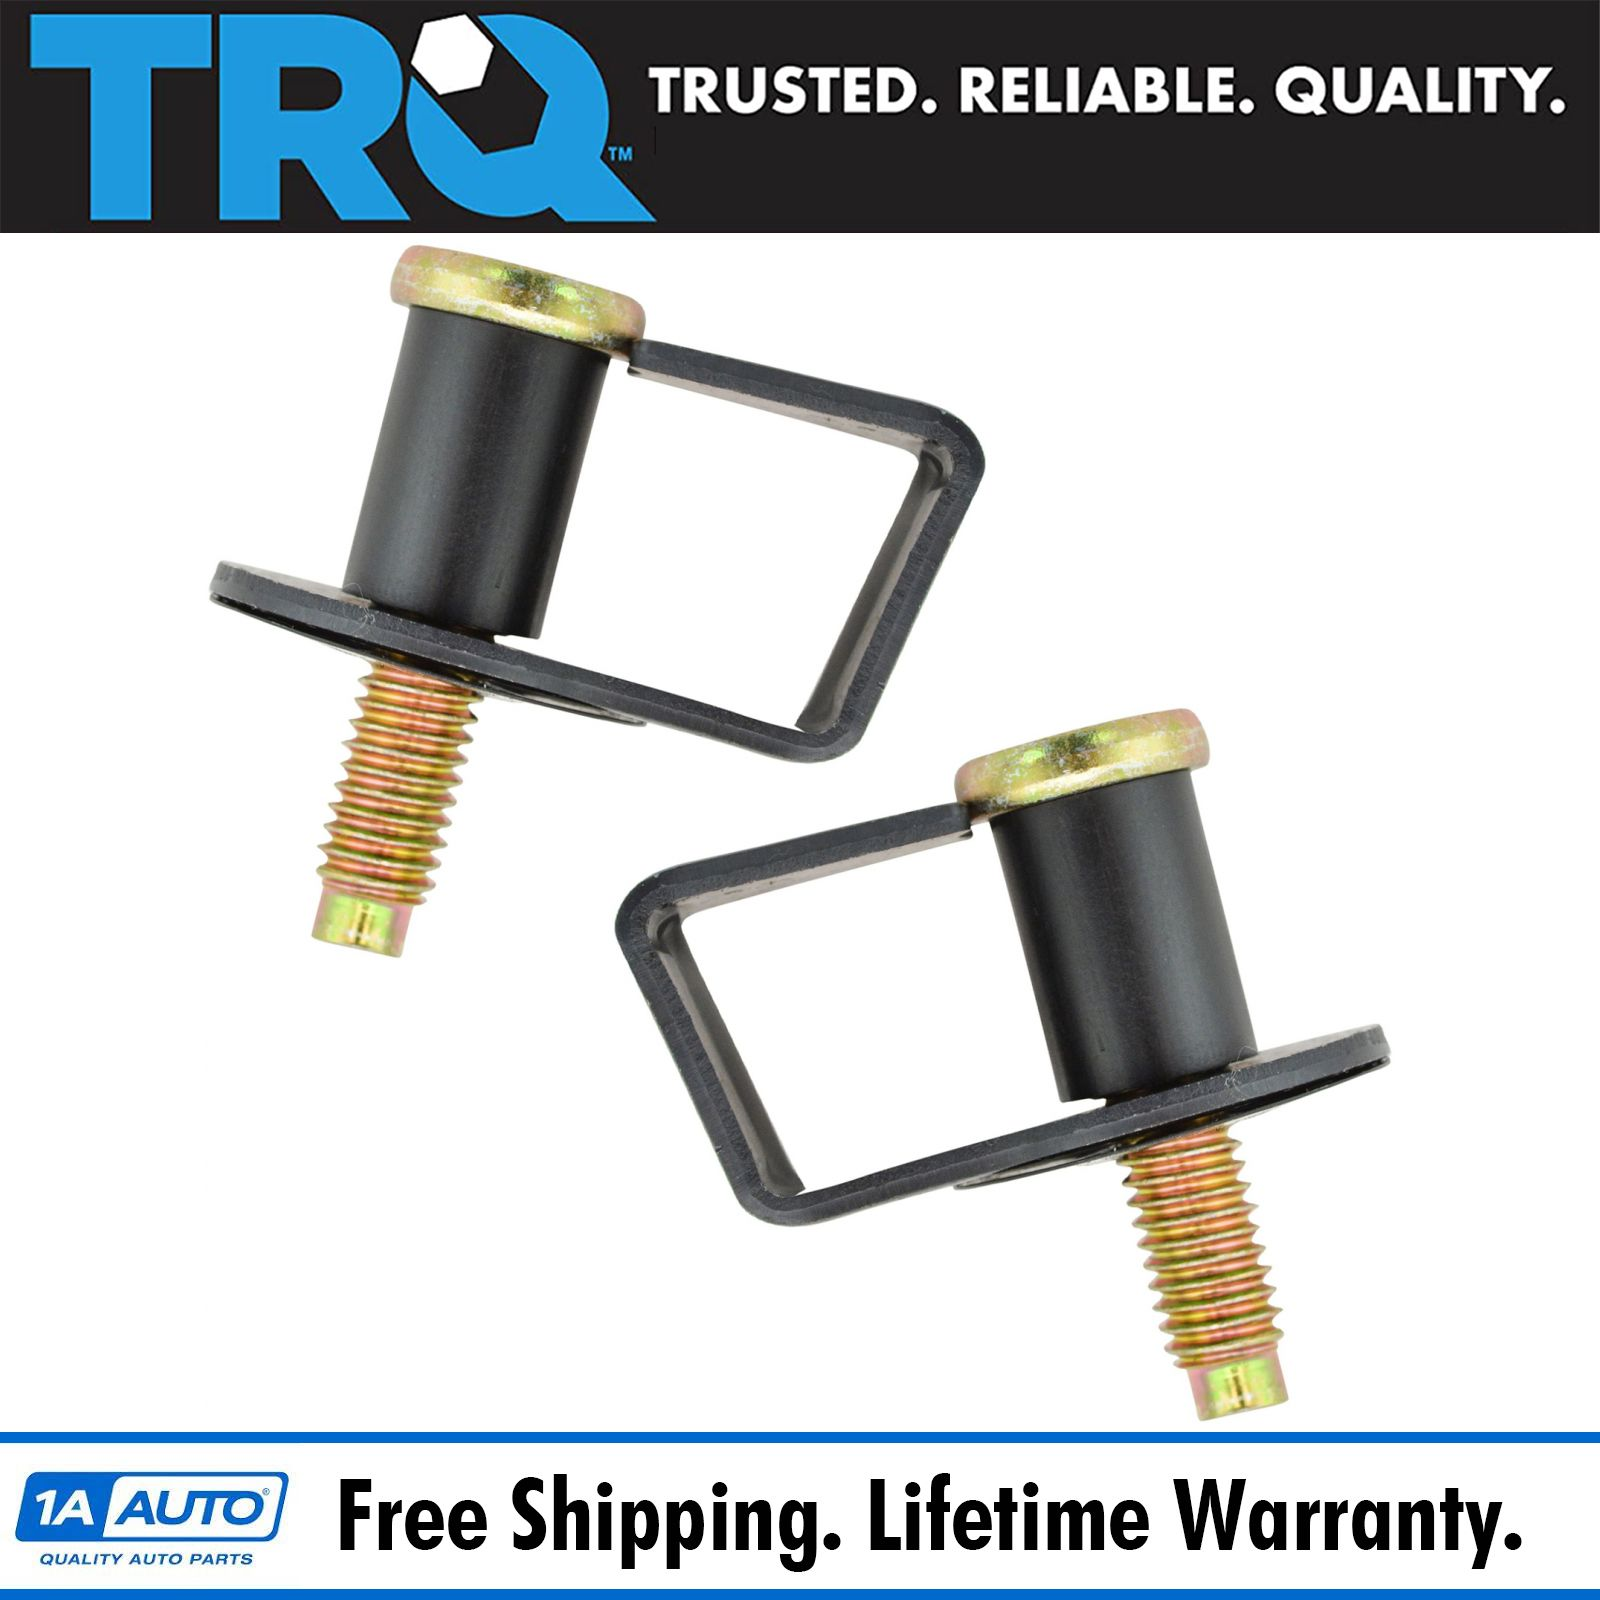 1A  Door Latch Striker Bolts Pair Set of 2 NEW for Ford Lincoln Mercury